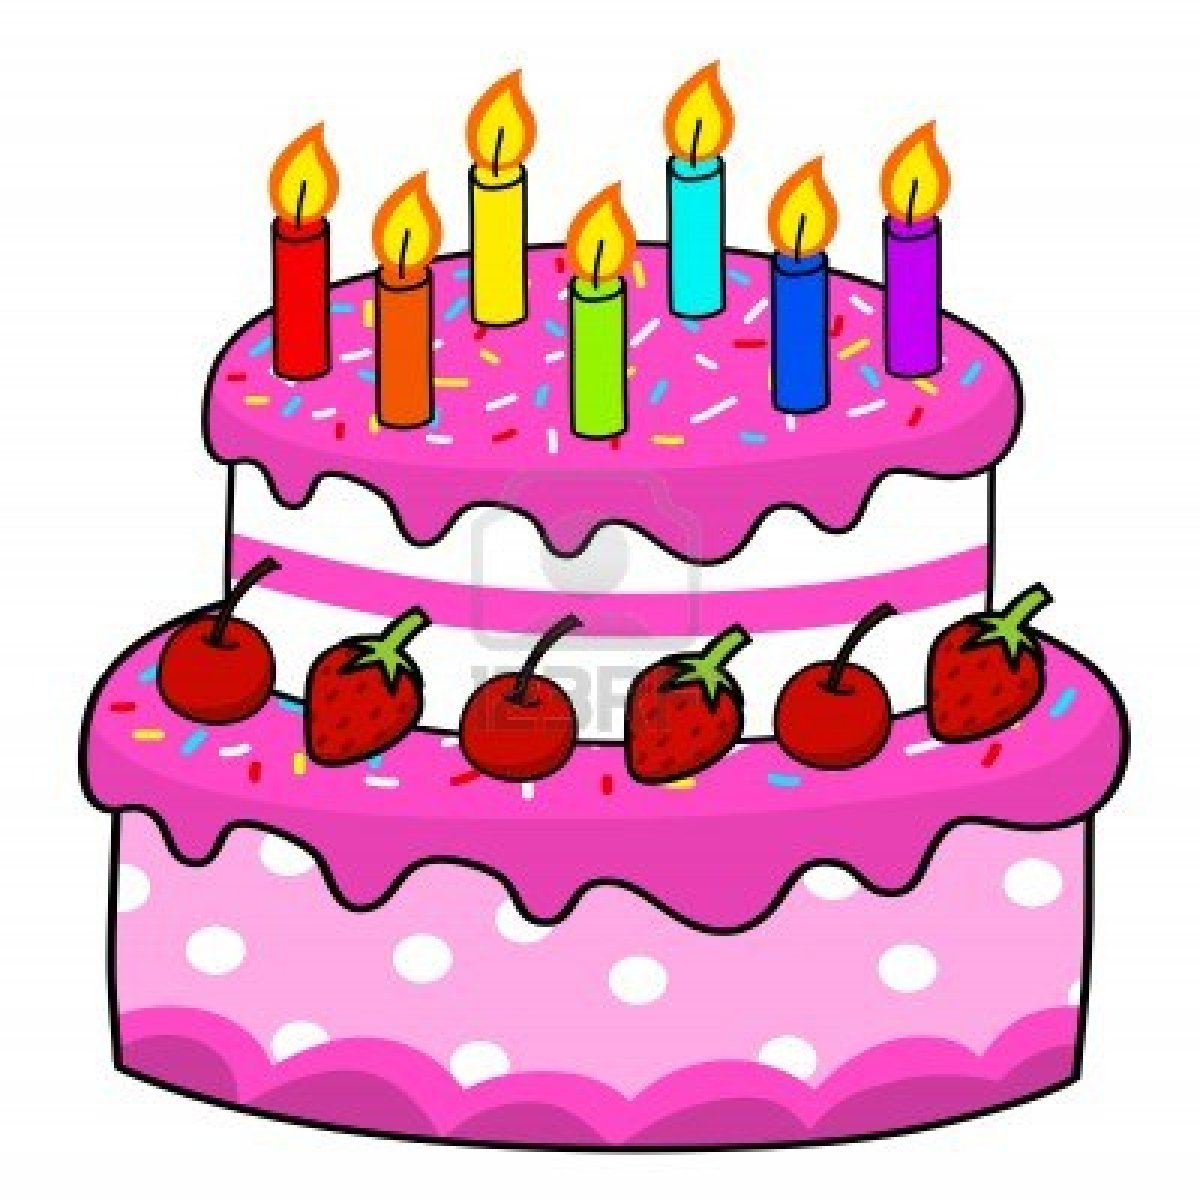 Cartoon Pics Of Birthday Cakes : Birthday Cakes Of Cartoon ~ Image Inspiration of Cake and ...